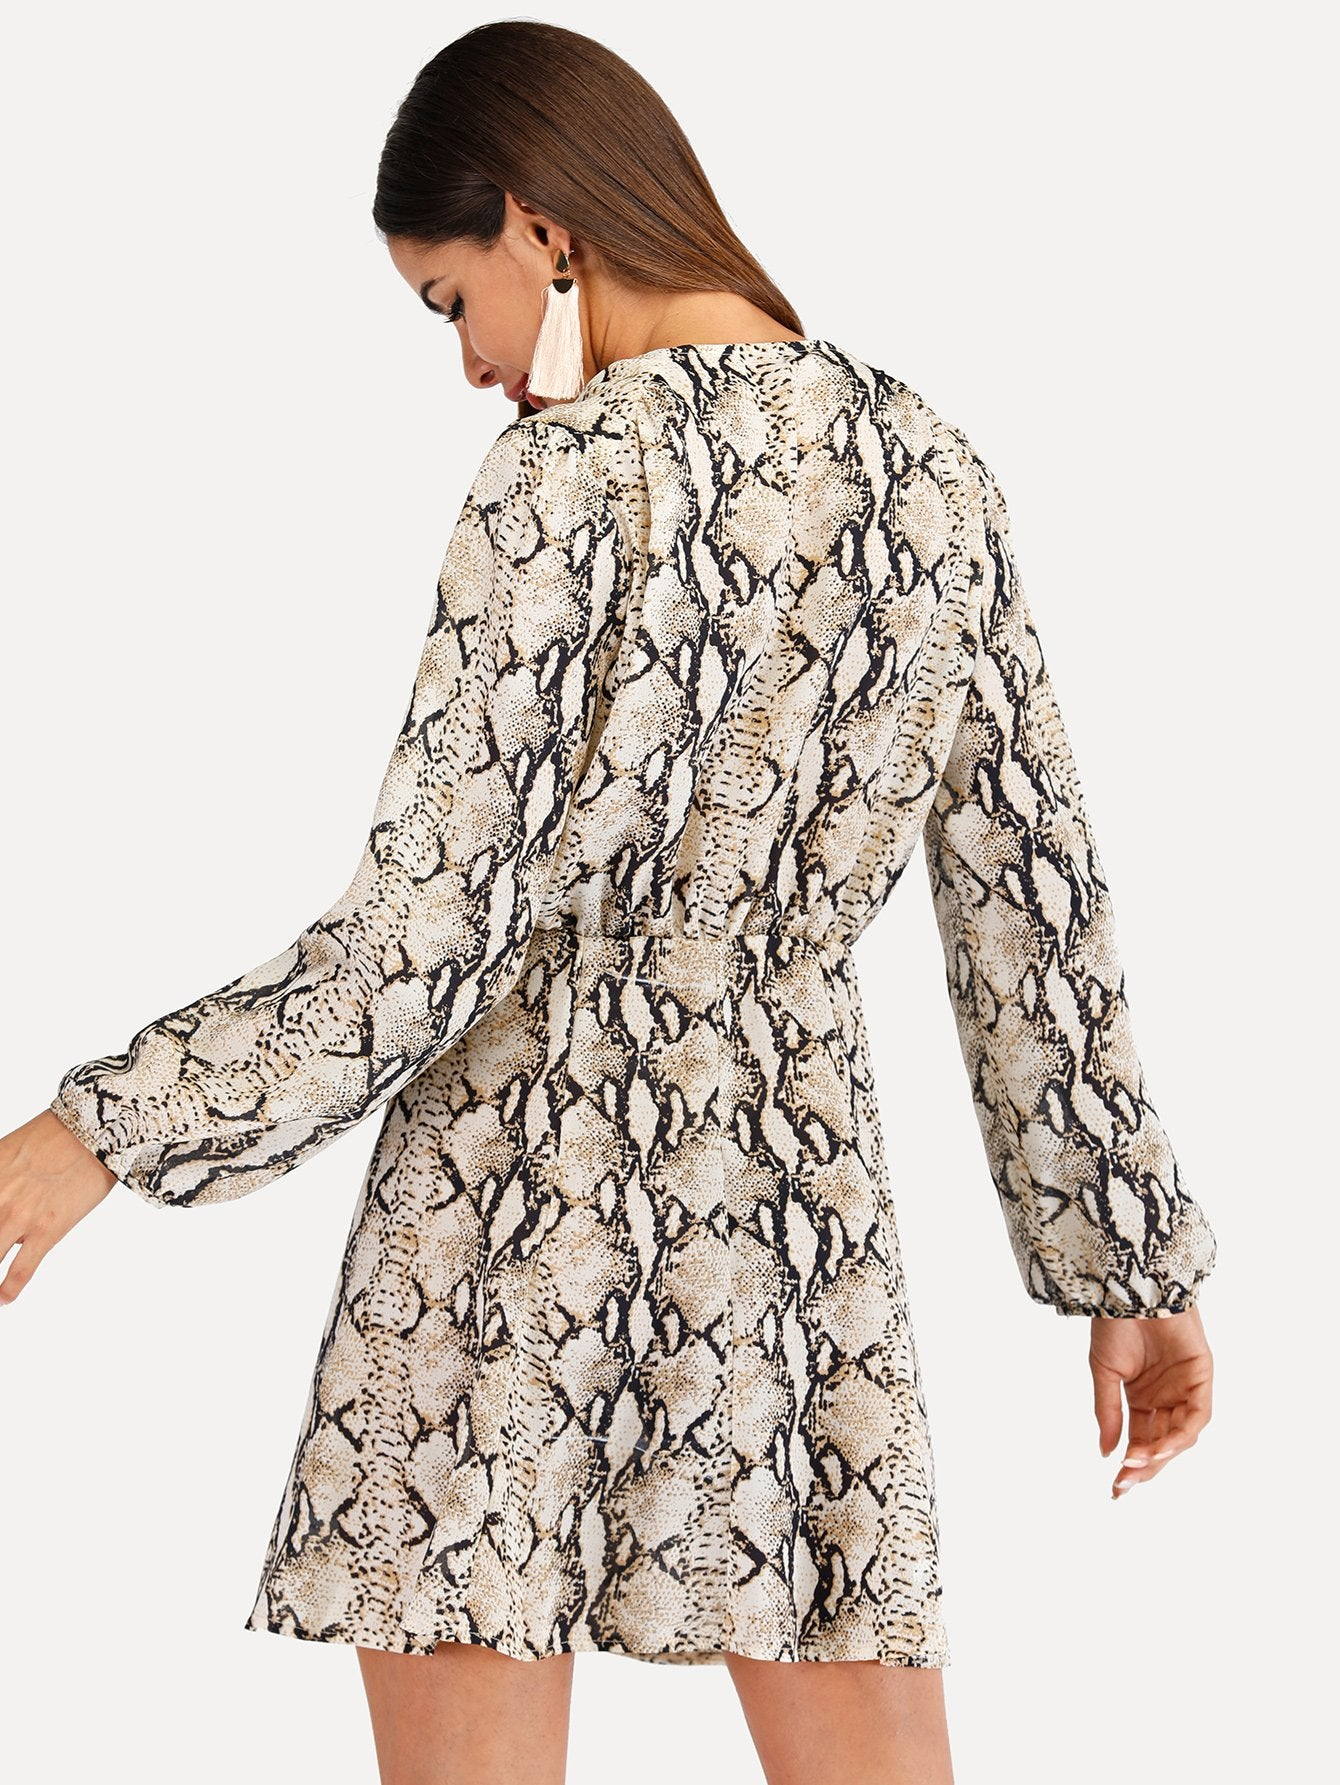 dress womens snake print dress animal printed dress lord owens